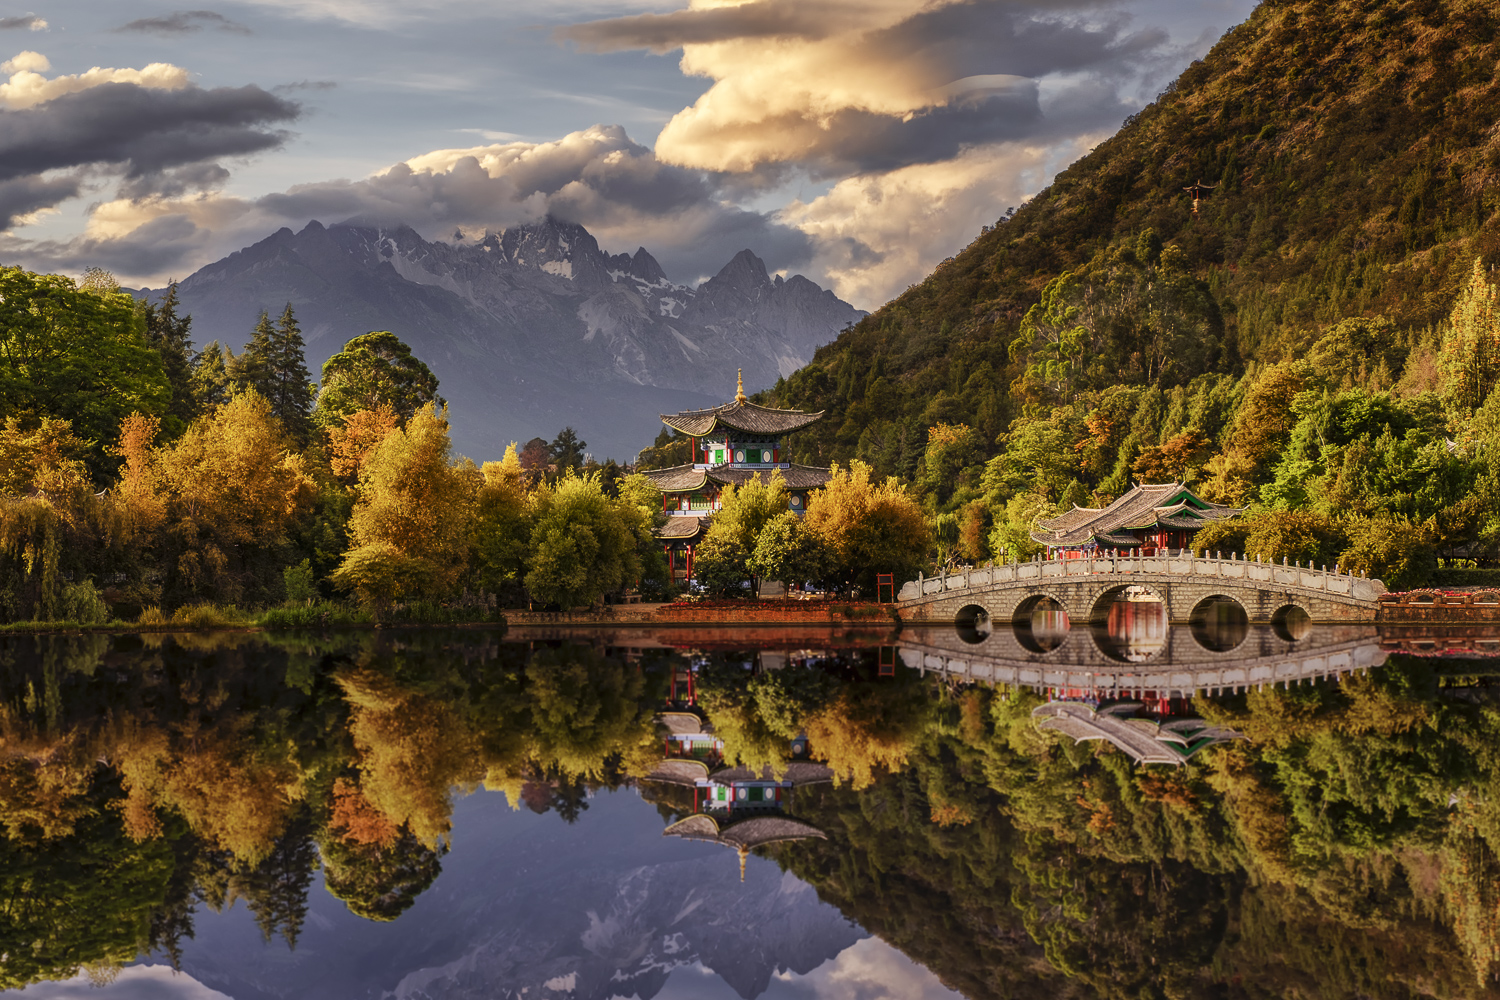 A small temple with a great view of the Jade Dragon Snow Mountain, reflected in the Black Dragon Pool in Lijiang, China